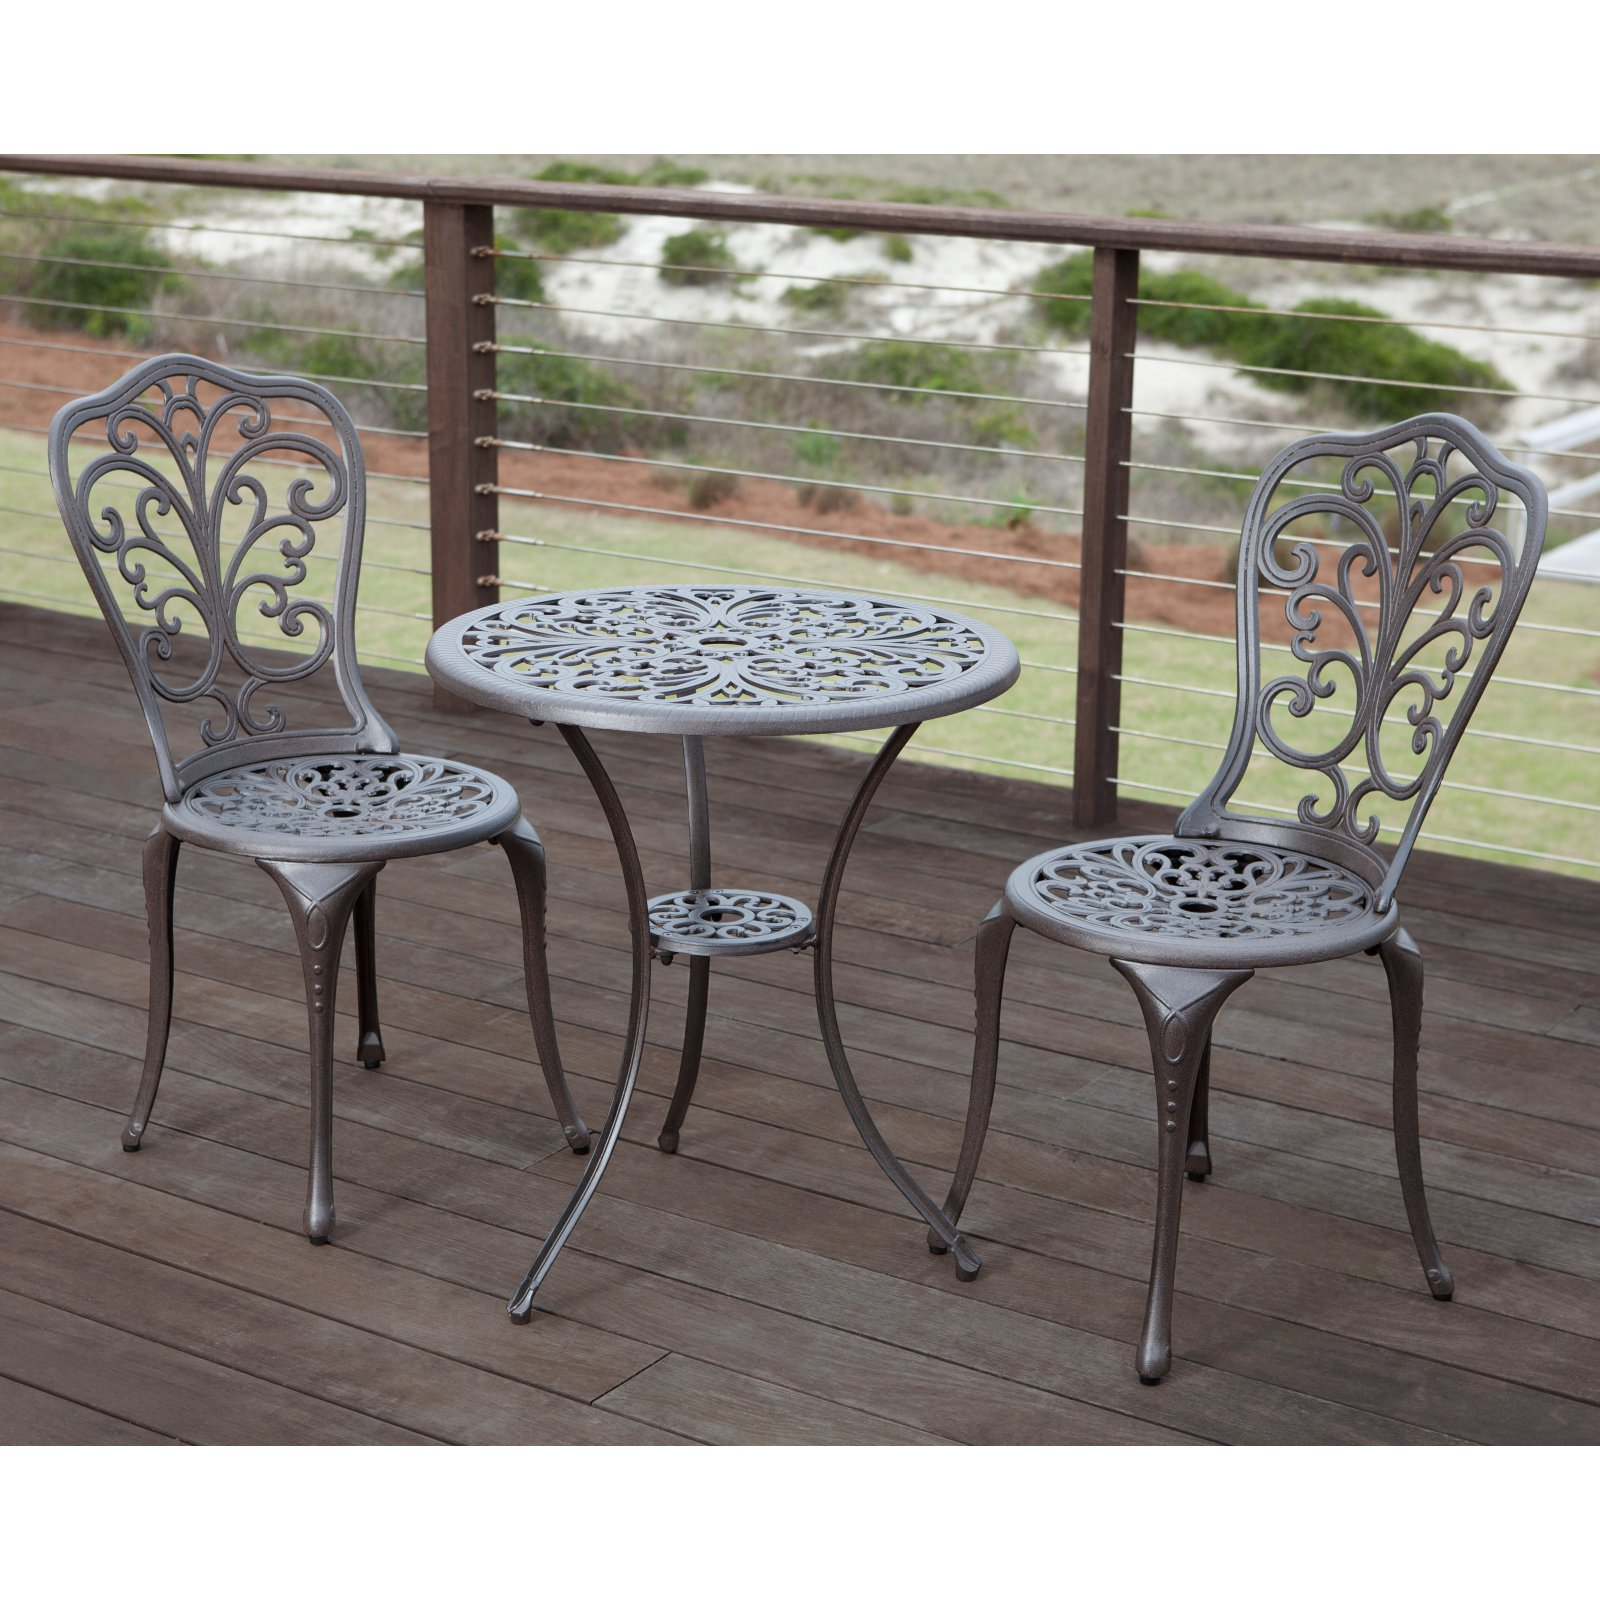 Patio Sense Faustina Antique Bronze Cast Aluminum 3-Piece Bistro Set